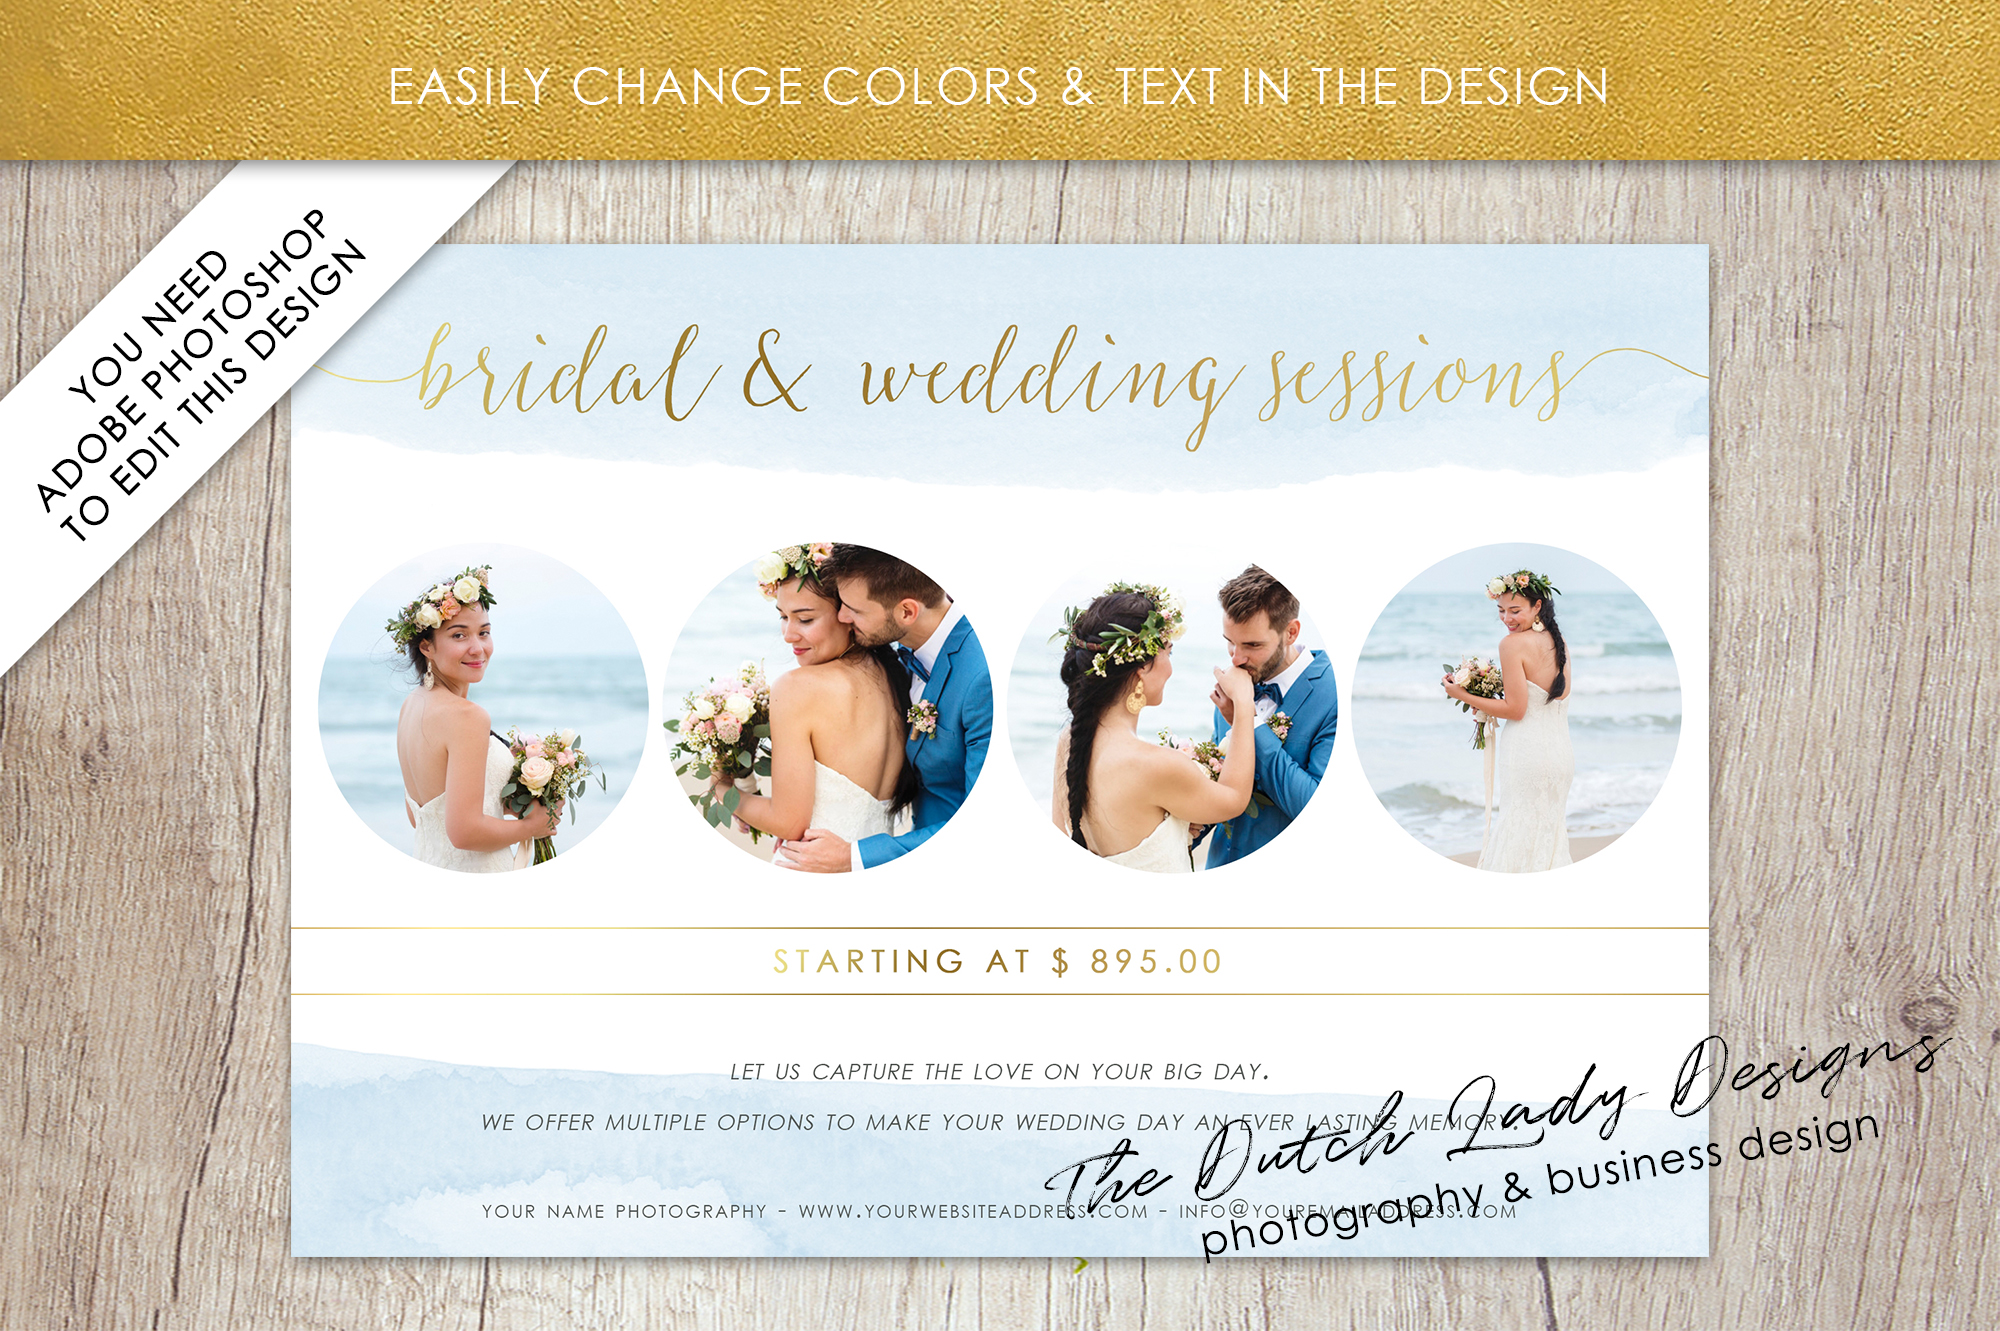 PSD Wedding Photo Session Card Template - Design #34 example image 3